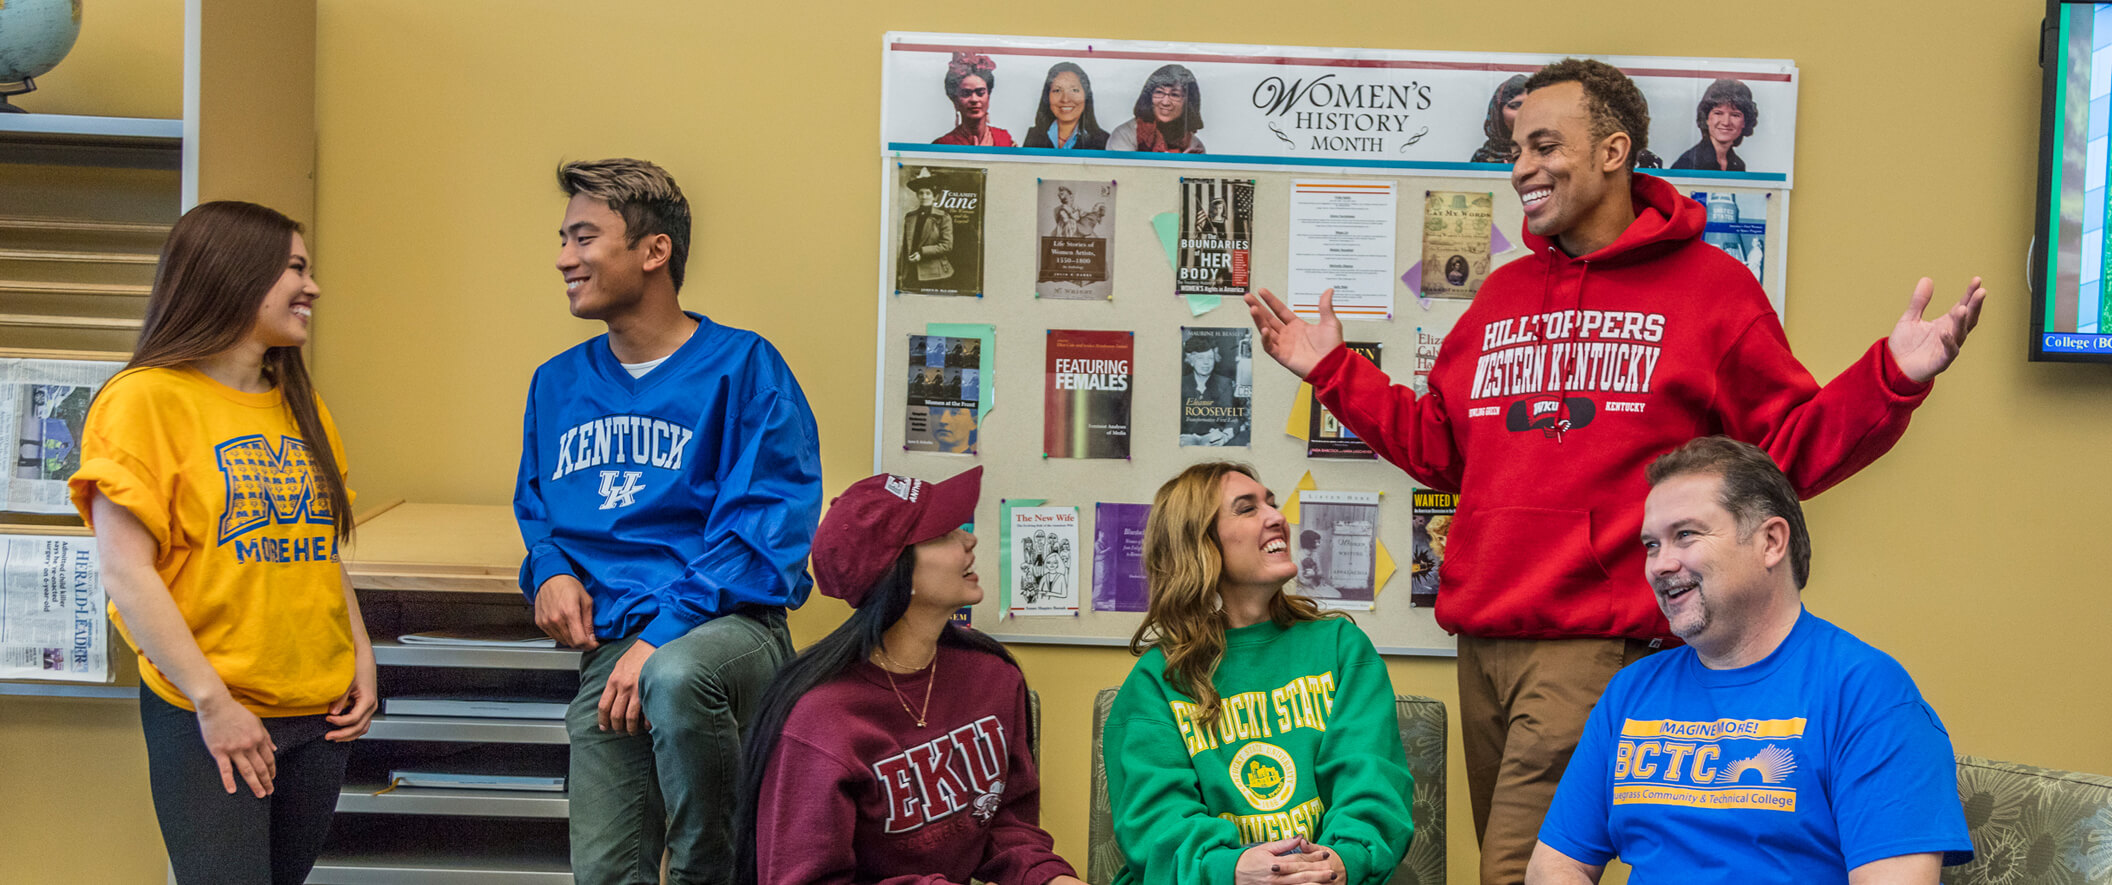 students in lounge wearing different college sweatshirts